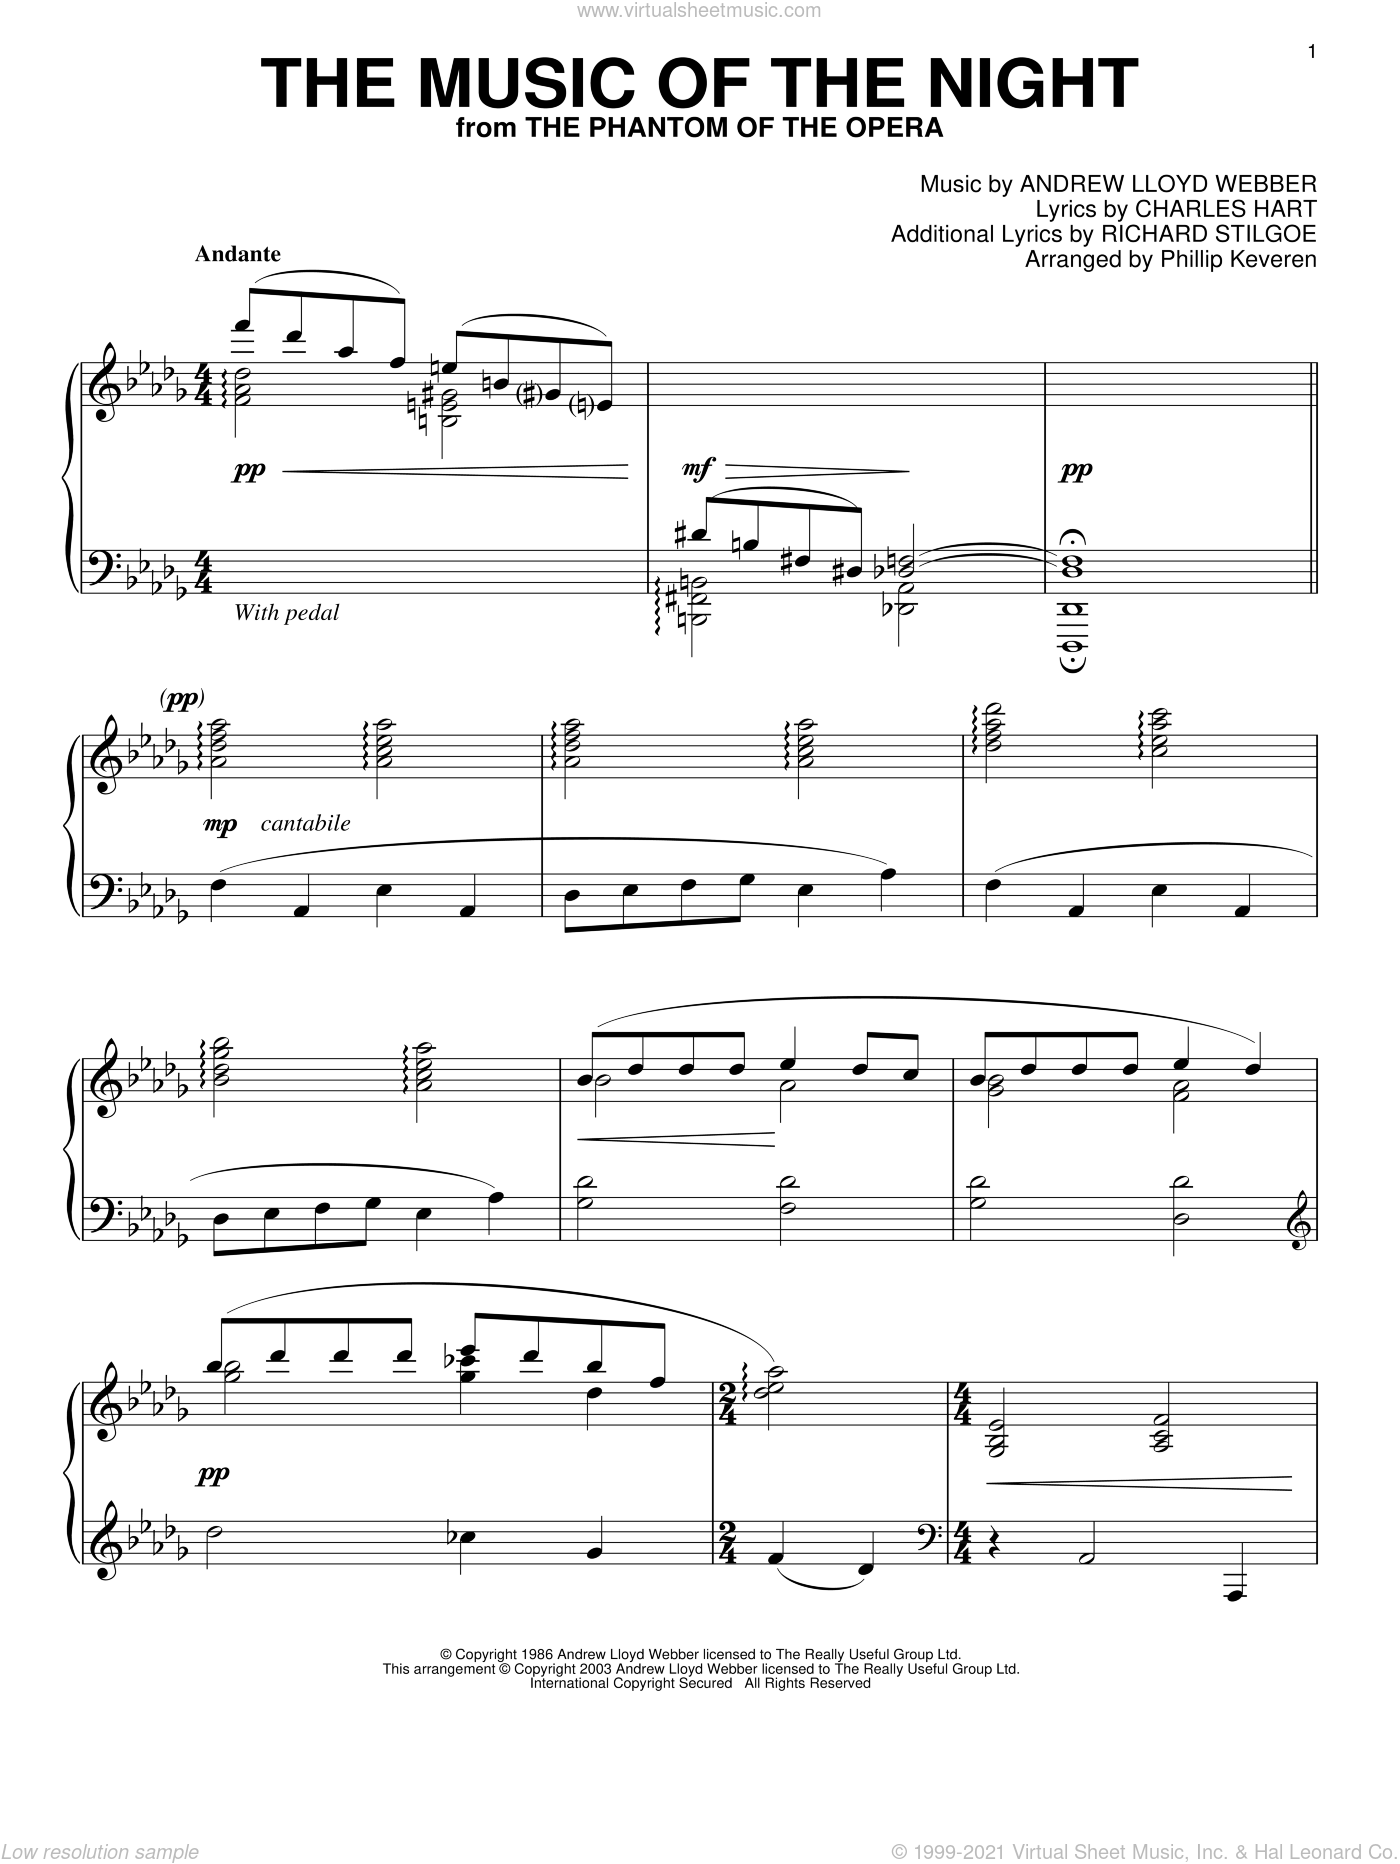 The Music Of The Night sheet music for piano solo by Richard Stilgoe